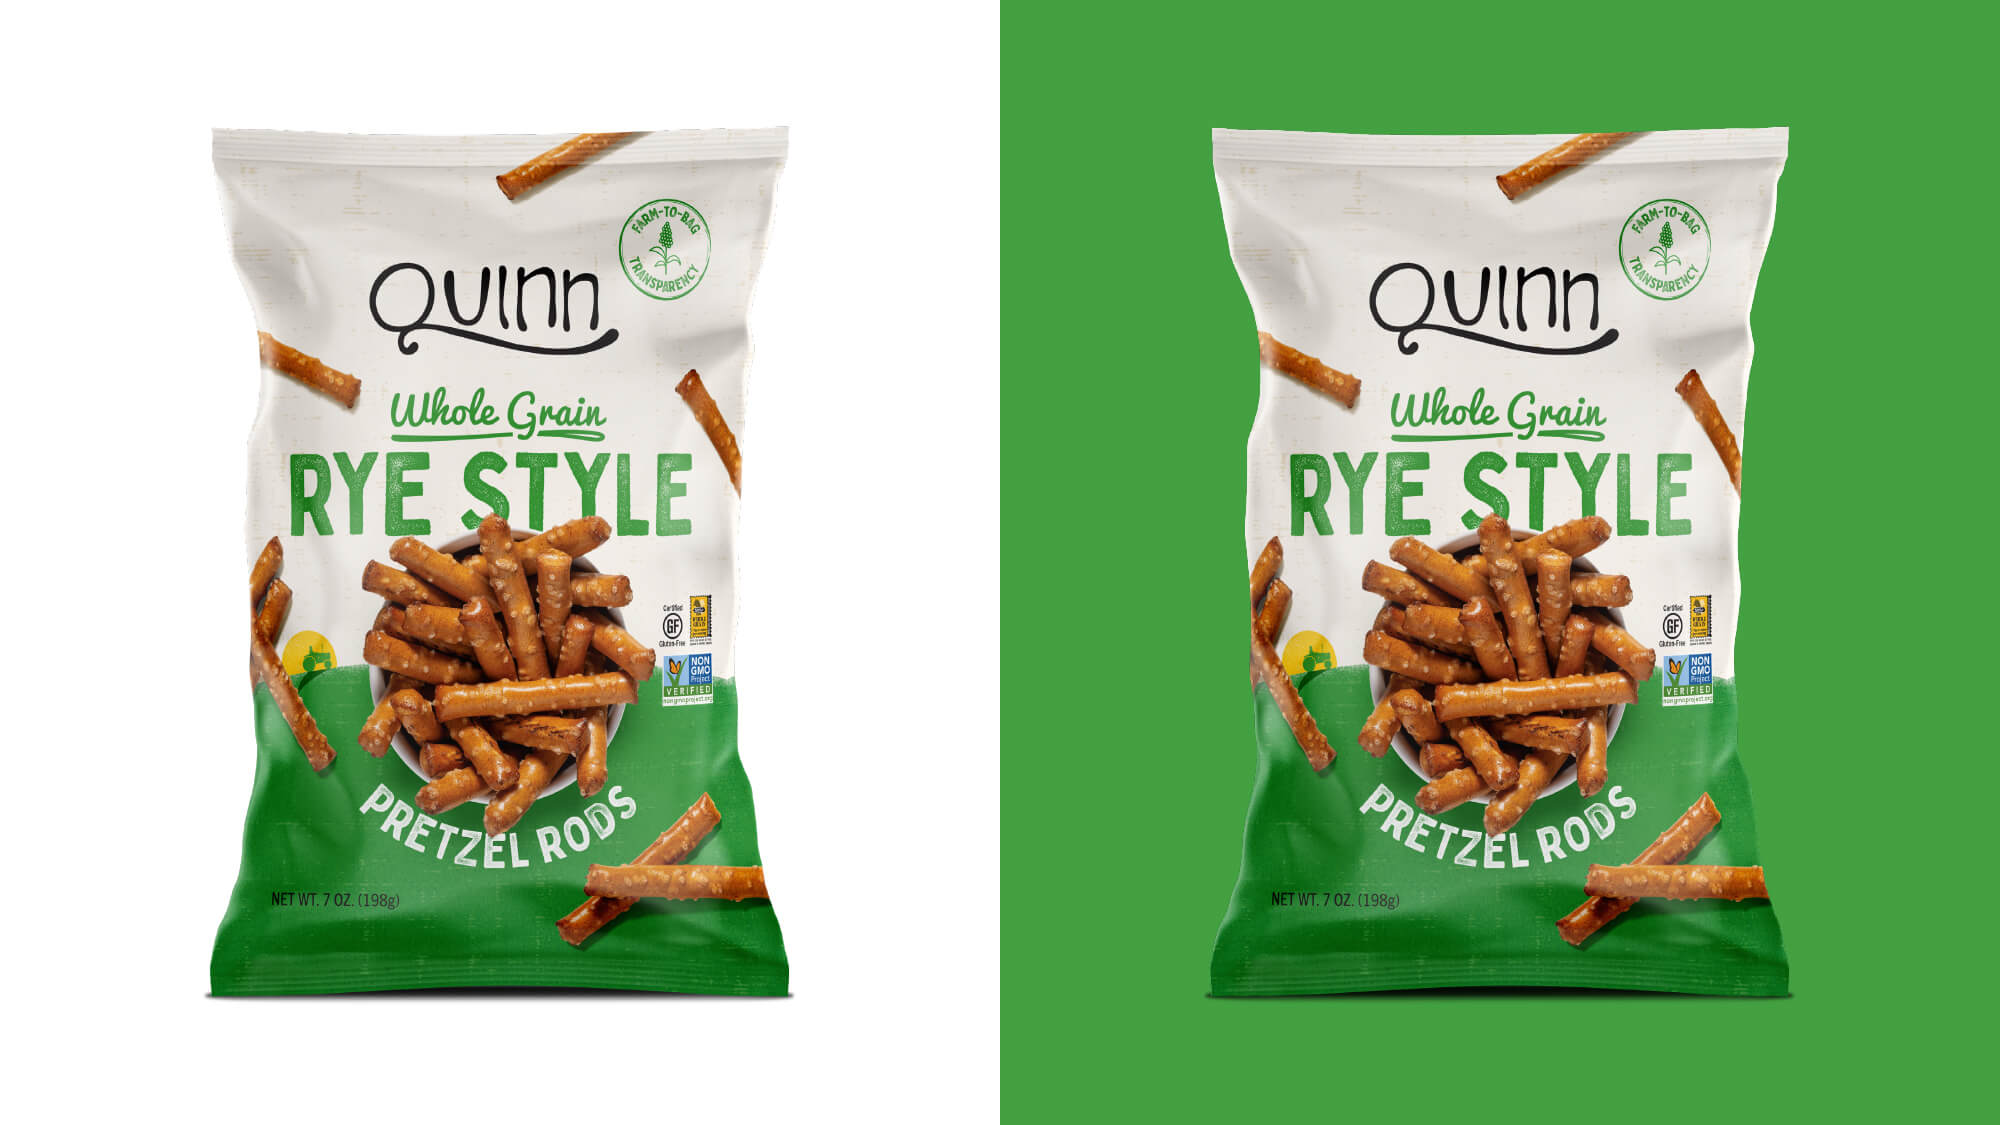 Quinn Pretzels Packaging - Whole Grain Rye Style Pretzel Rods